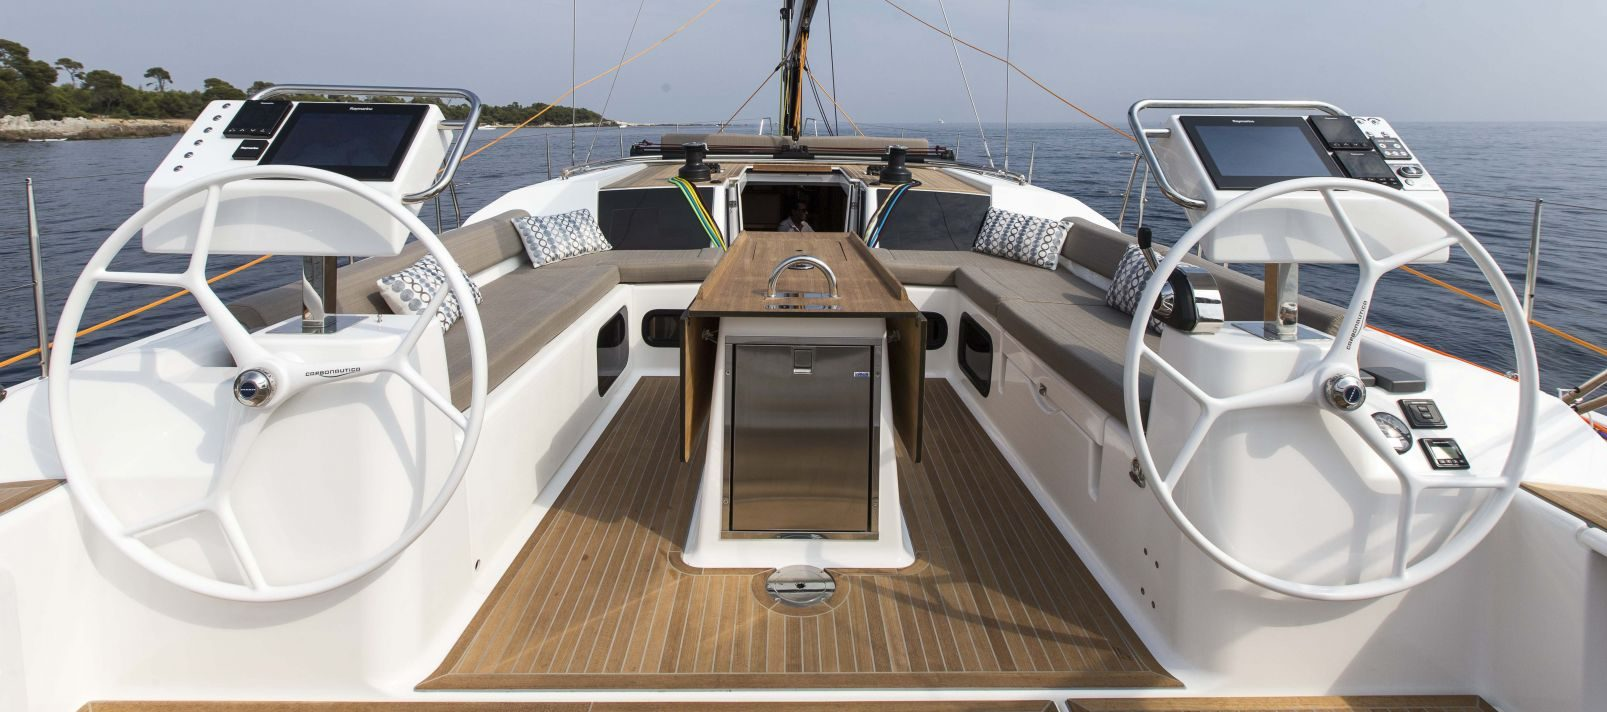 Dufour 56 dual helm